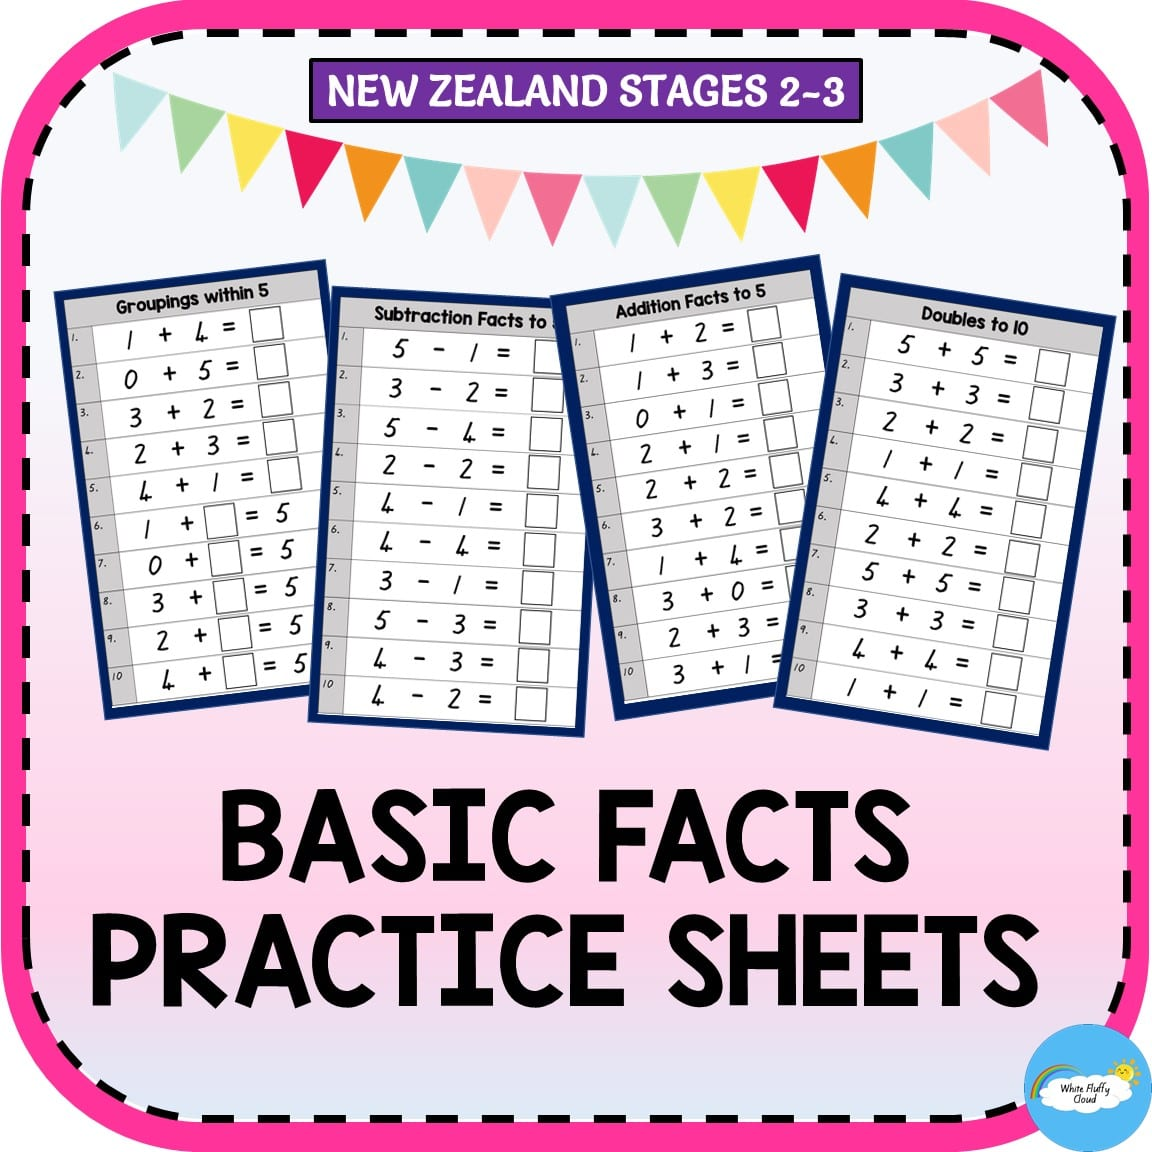 Basic Facts Practice Sheets Nz Stages 2 3